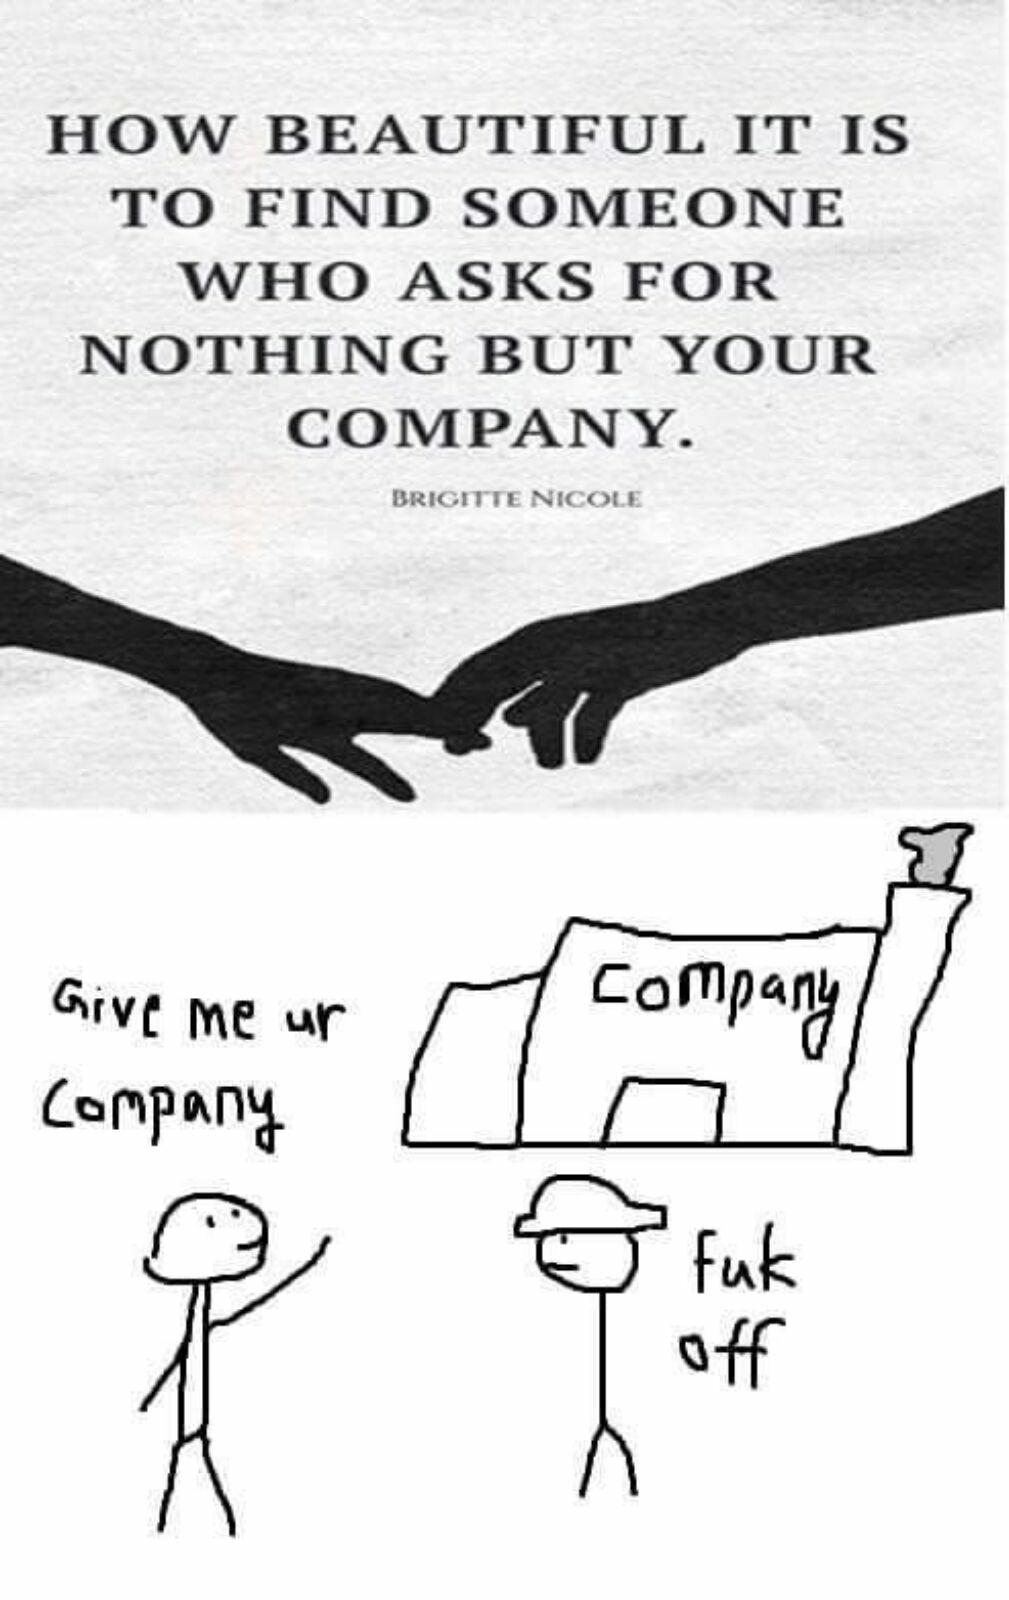 Just your company. - meme